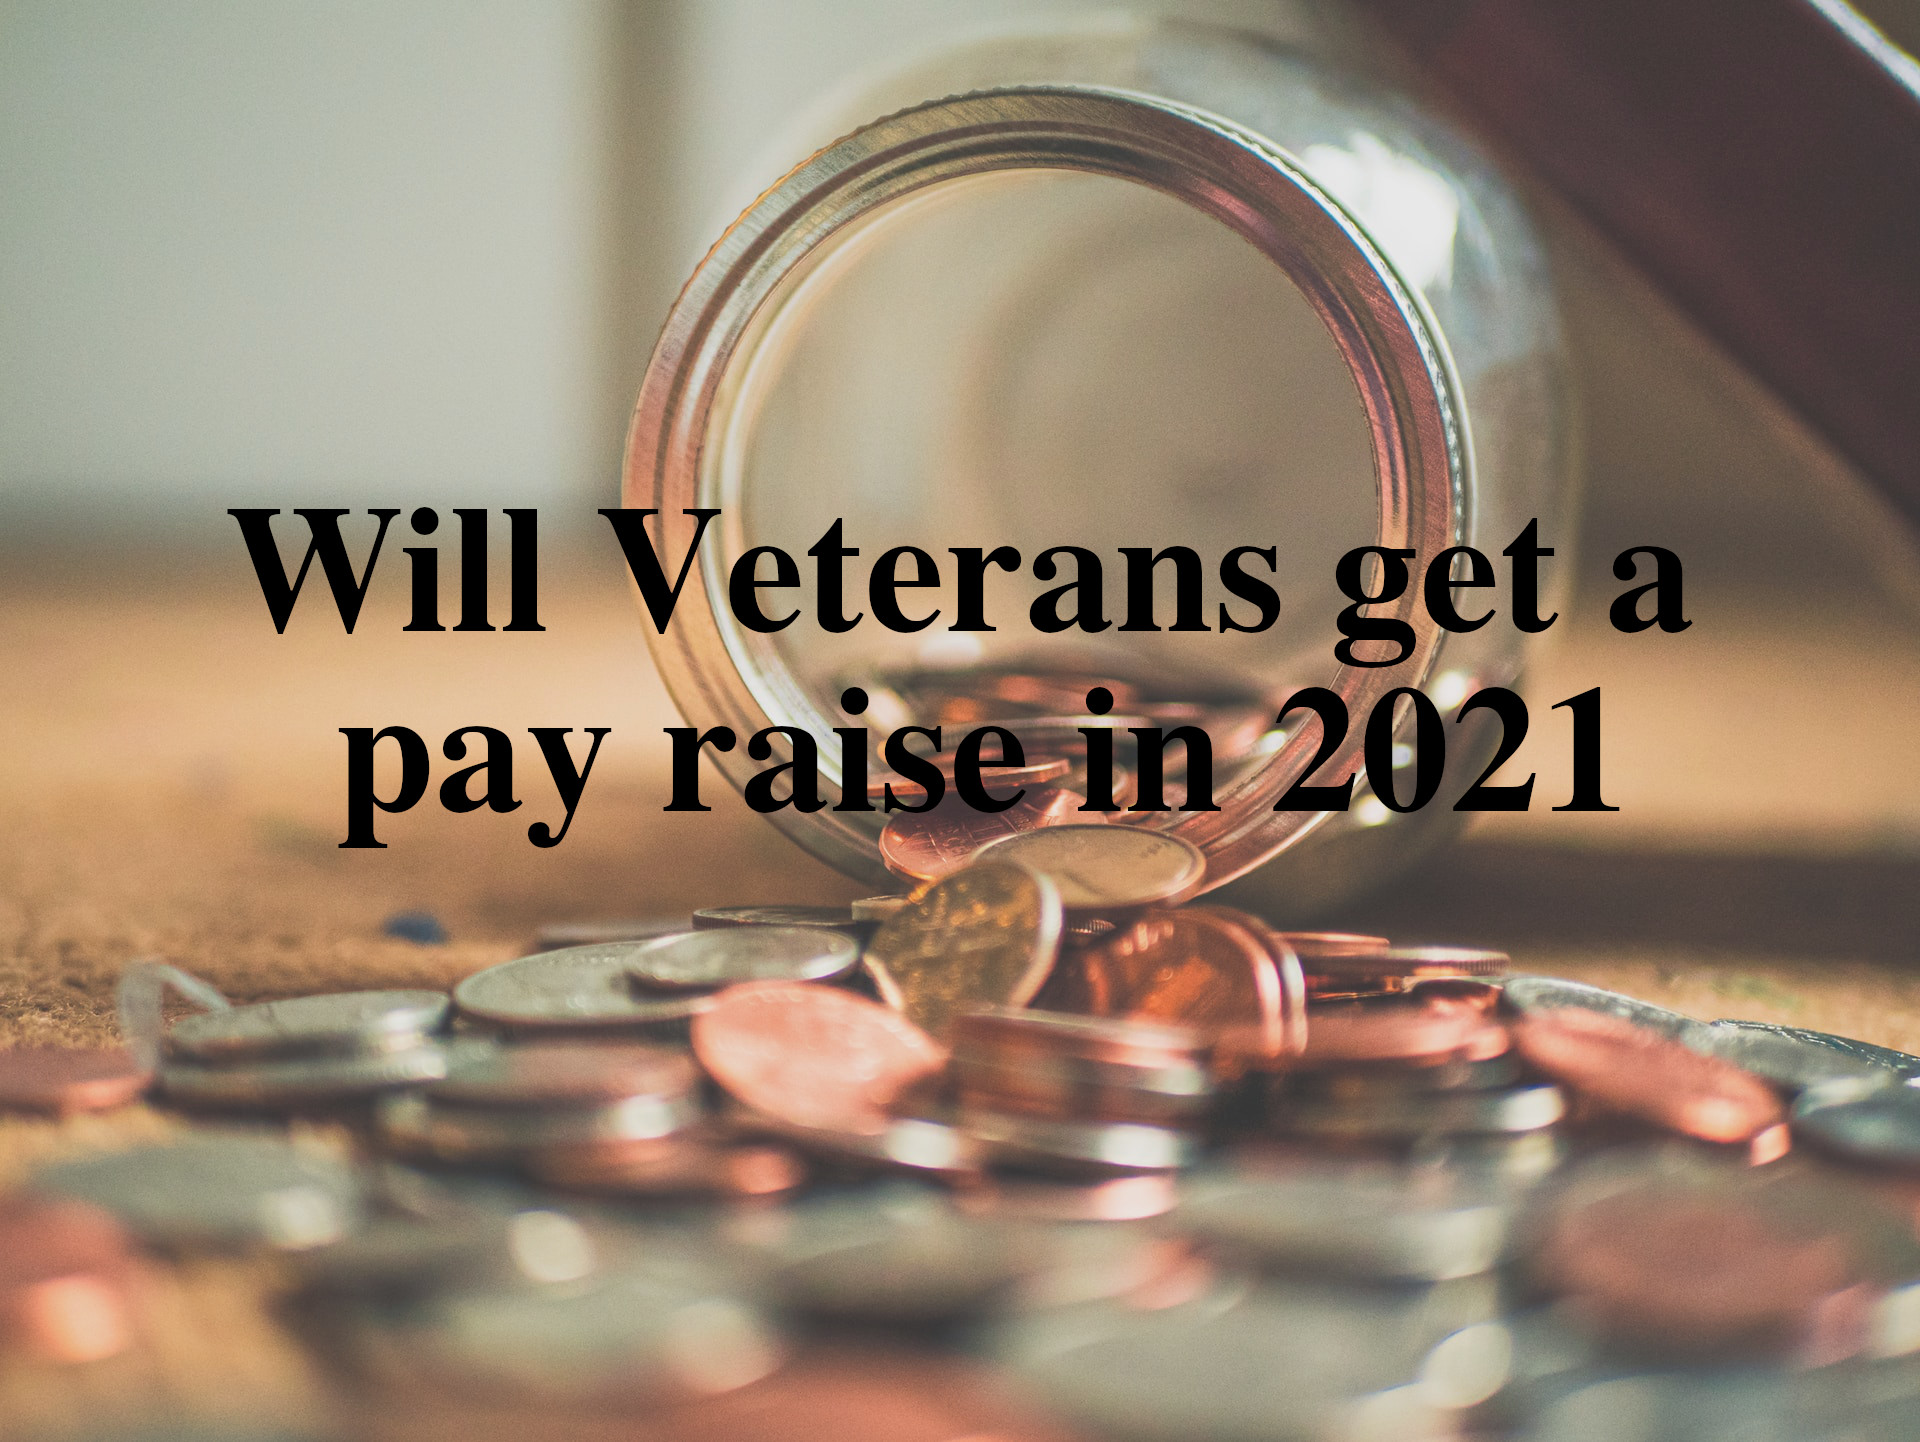 Will veterans get a pay raise in 2021